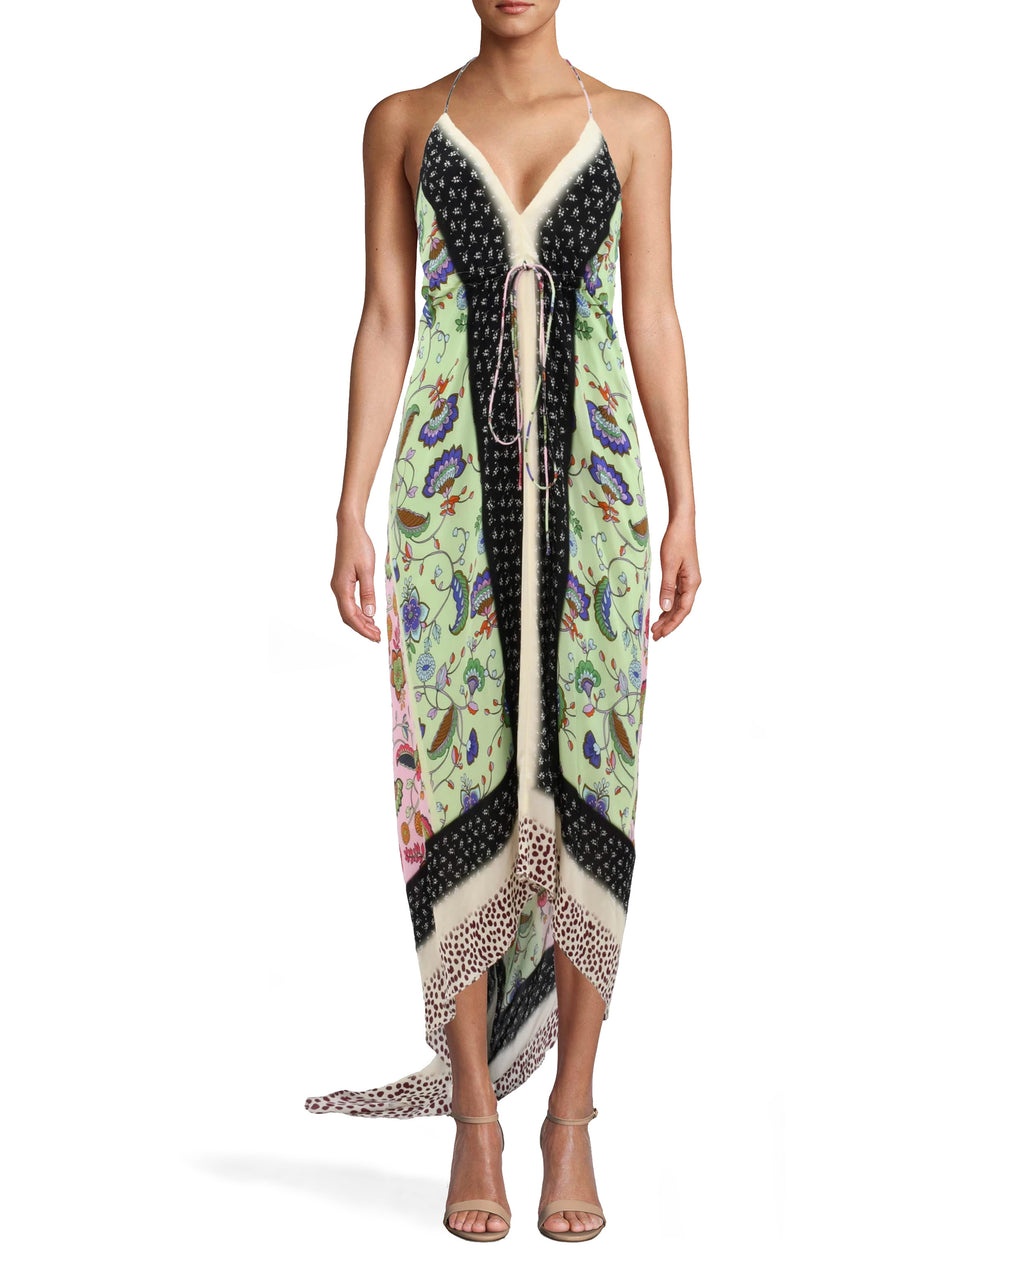 BS10188 - CHABANA SCARF ANGELINA DRESS - dresses - long - DESIGNED IN OUR VIBRANT CHABANA SCARF PRINT, THE ANGELINA DRESS FEATURES A SEXY OPEN BACK AND HIGH LOW HEM. THE LIGHTWEIGHT AND SILKY FABRIC MAKES THIS PIECE PERFECT FOR PARTIES ON HOT SUMMER NIGHTS. THIS DRESS FEATURES A LOOP TO TUCK IN THE TRAIN, PREVENTING IT FROM DRAGGING. Add 1 line break STYLIST TIP: WEAR WITH NEUTRAL HEELS AND SIMPLE JEWELRY.